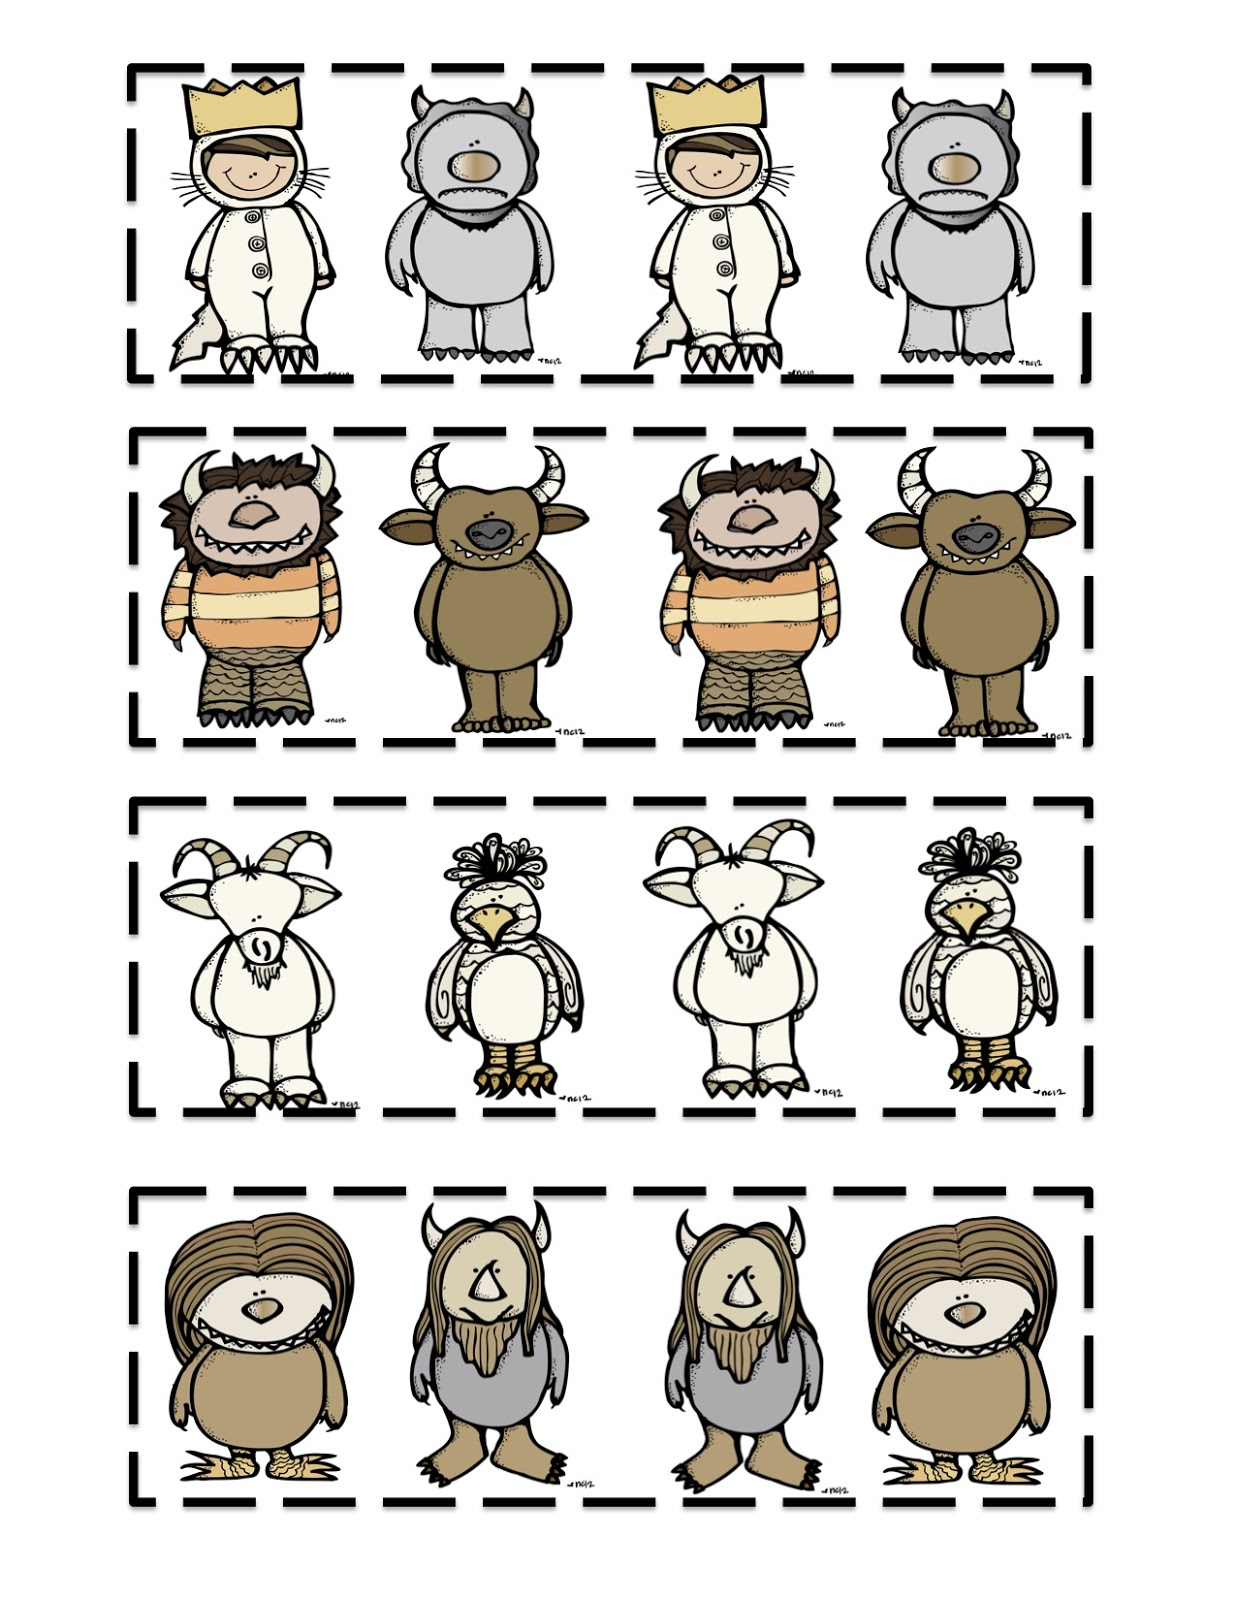 It's just a photo of Satisfactory Where the Wild Things Are Printables for Free